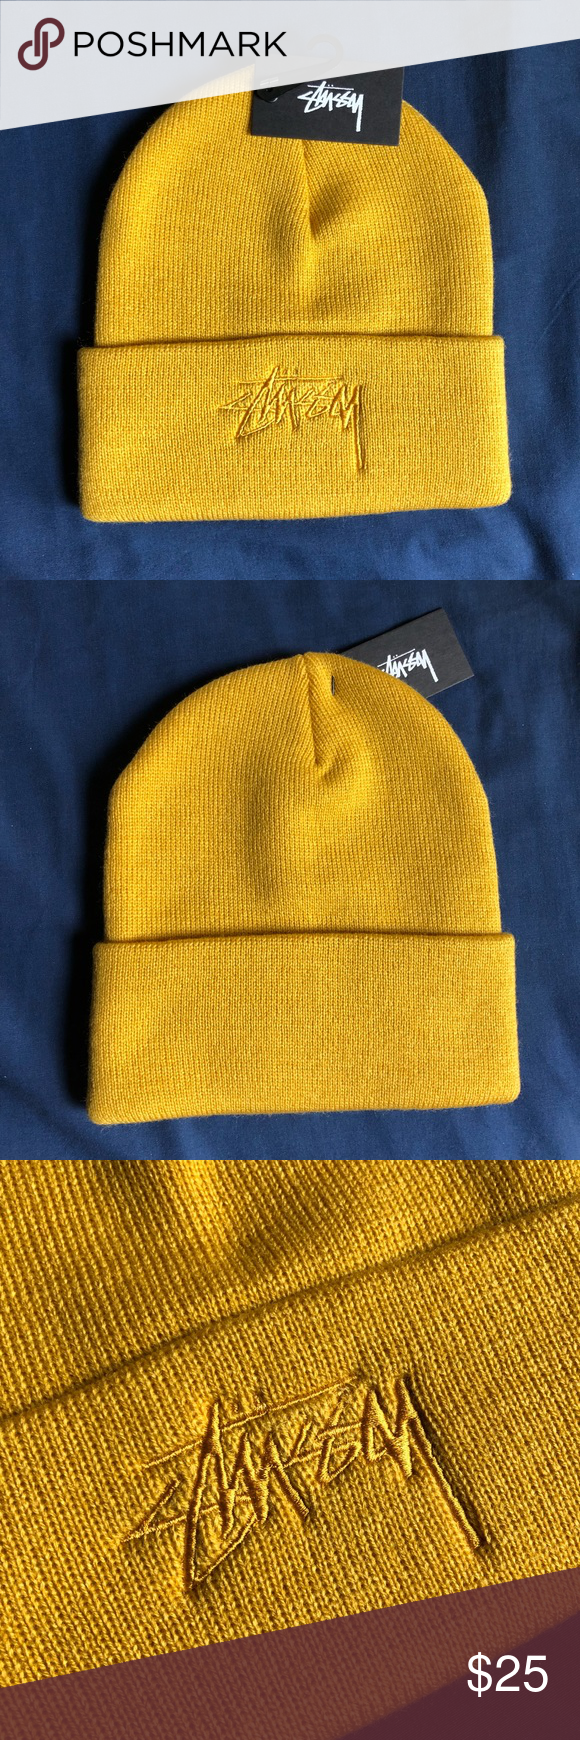 f893c7f084c Stussy Tonal Stock Cuff Beanie New with tags unisex Stussy beanie with  embroidered logo in a mustard color. Perfect condition